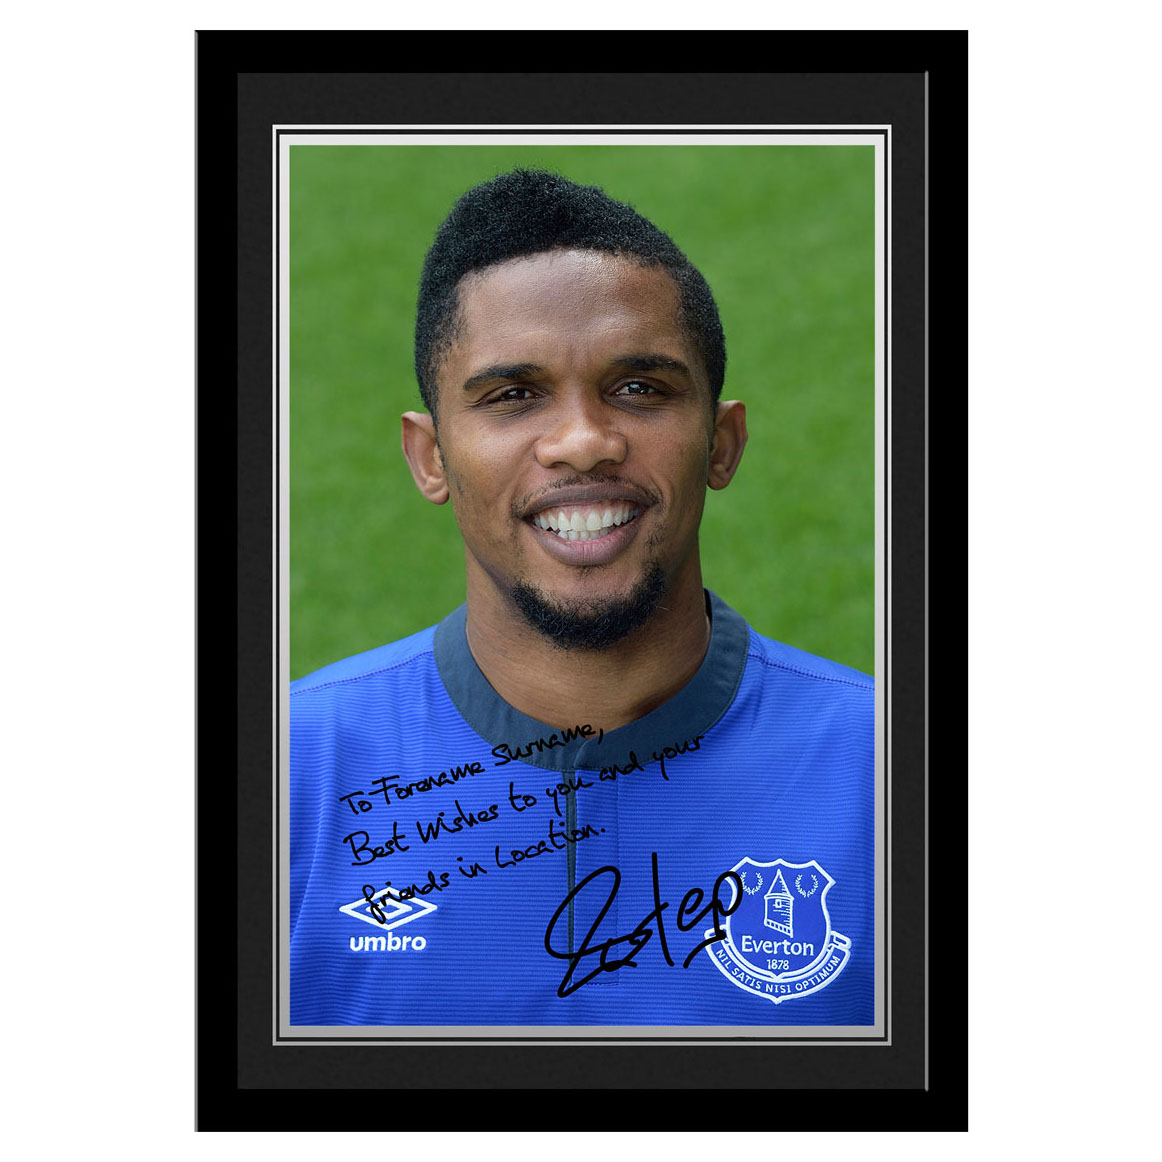 Everton Personalised Signature Photo Framed - Eto`o